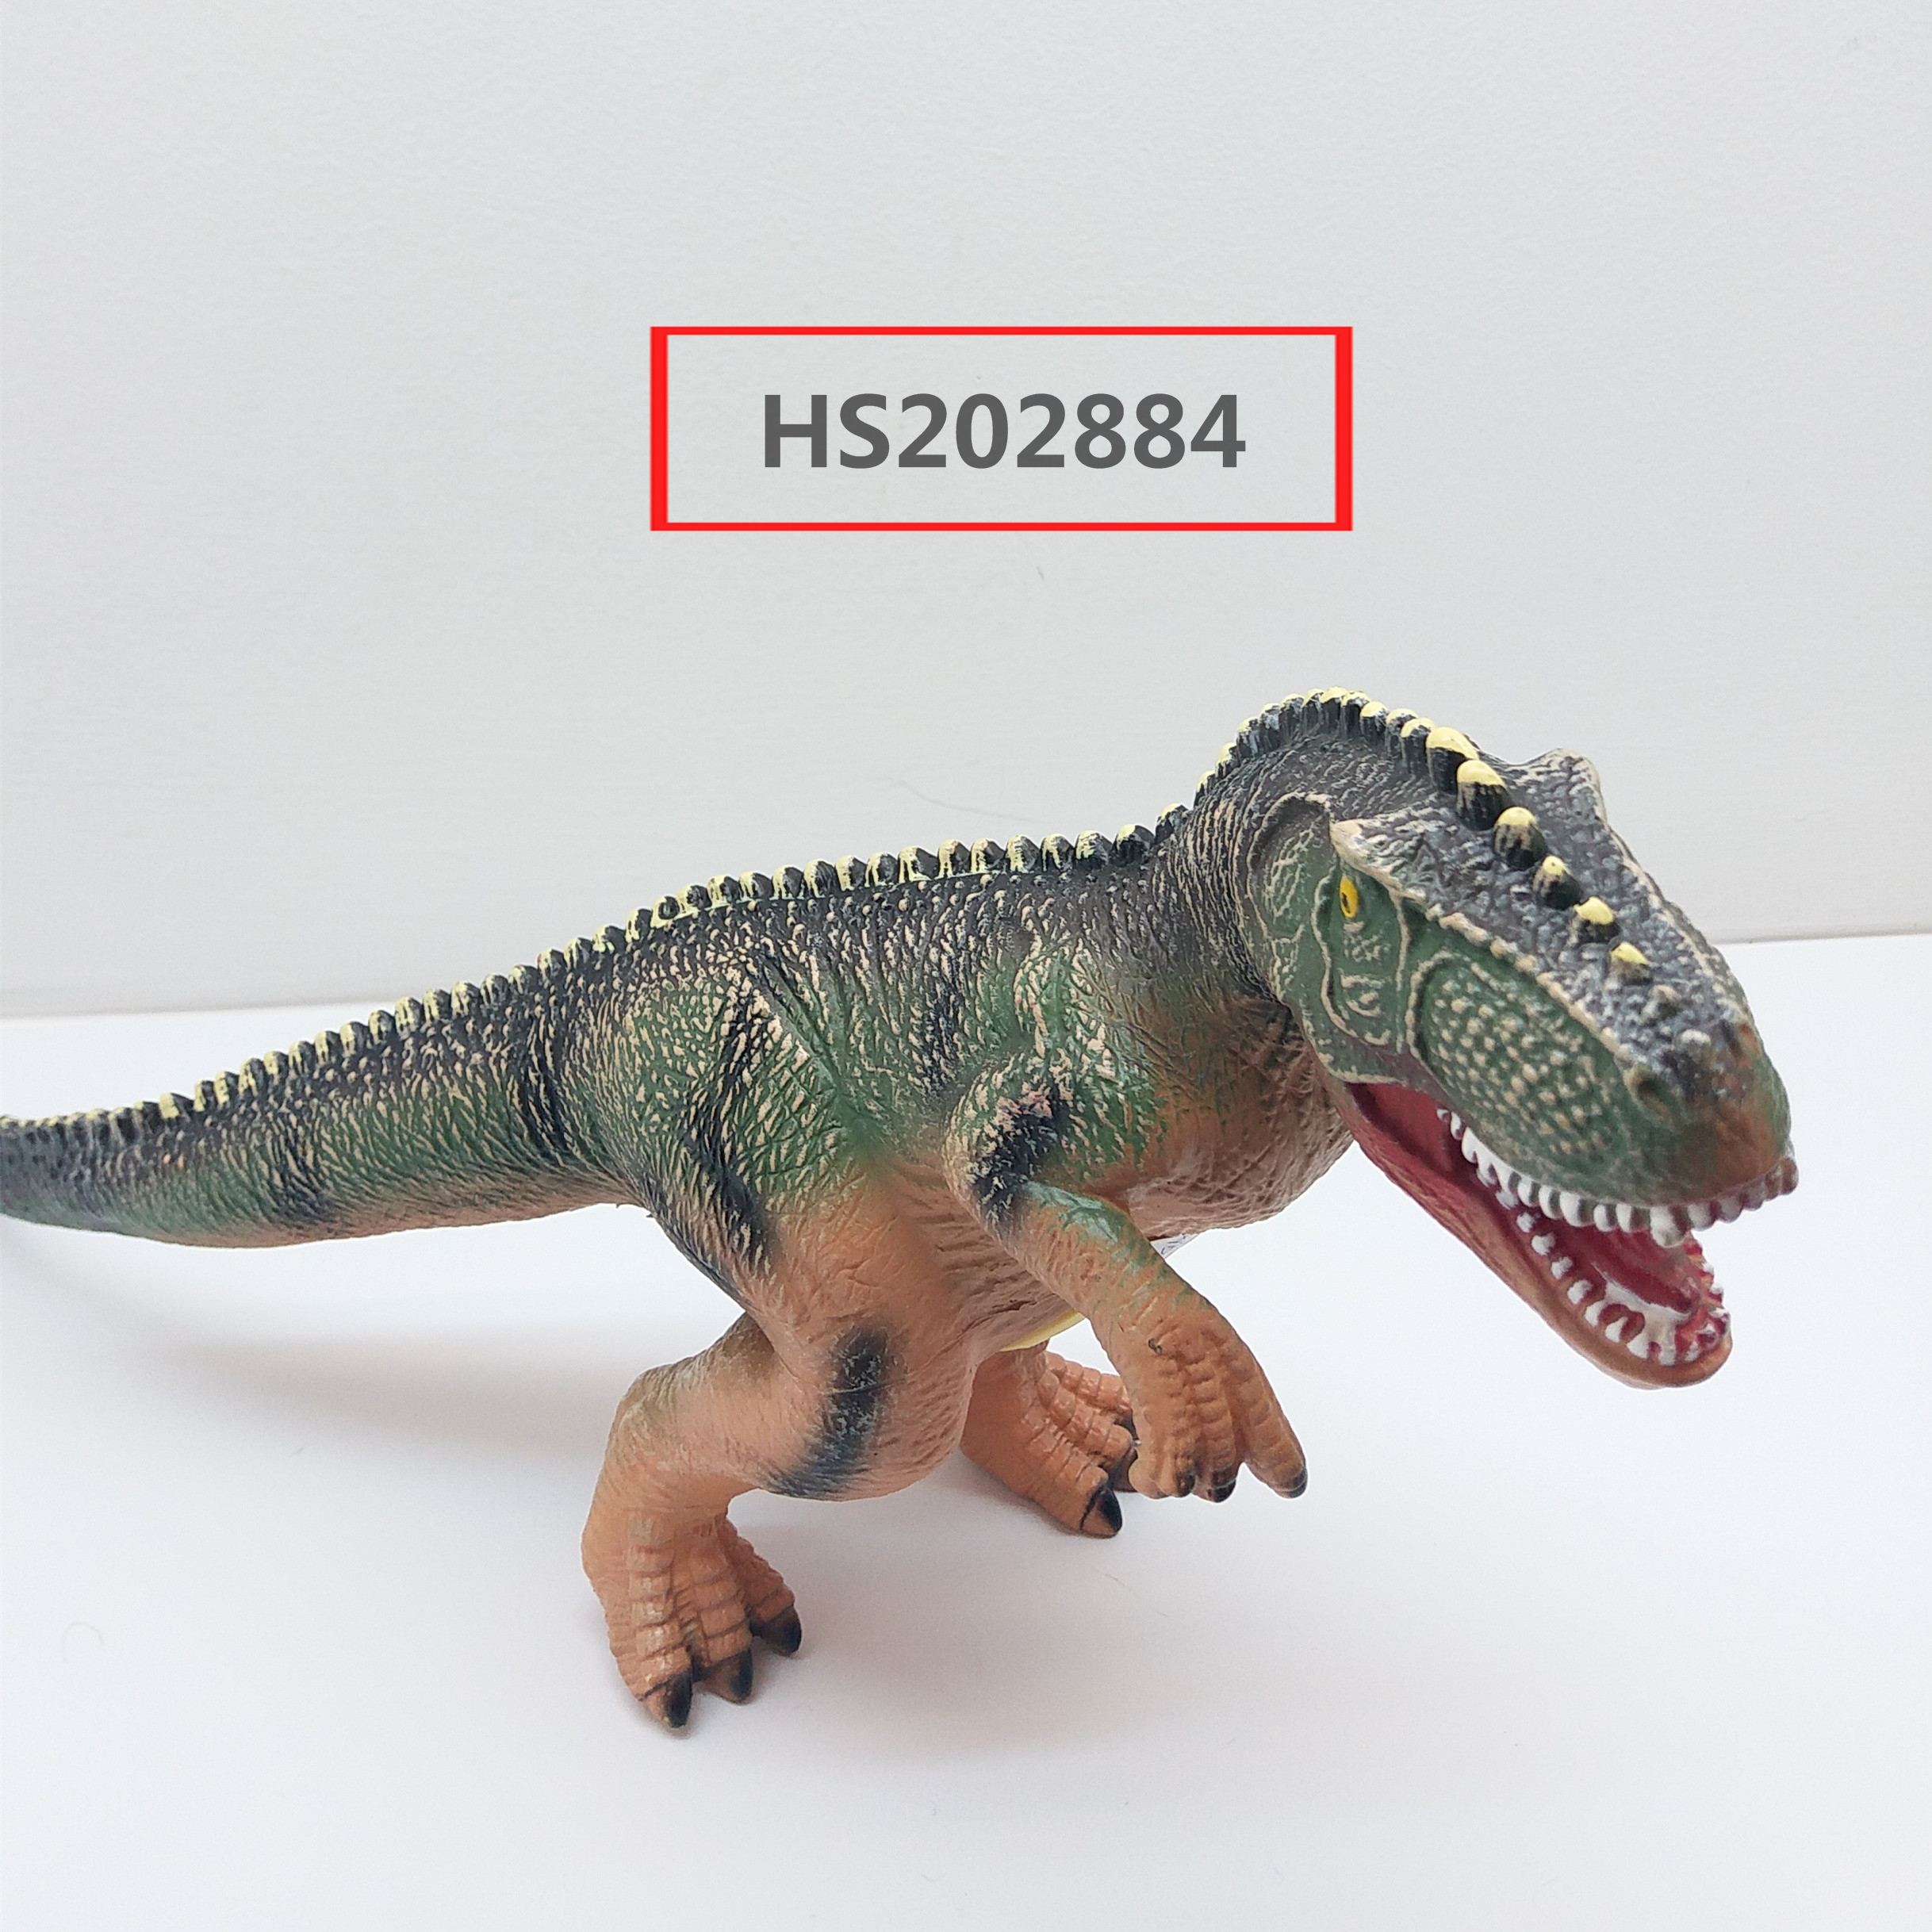 HS202884, Huwsin Toys, Soft dinosaur for kids, Educational toy